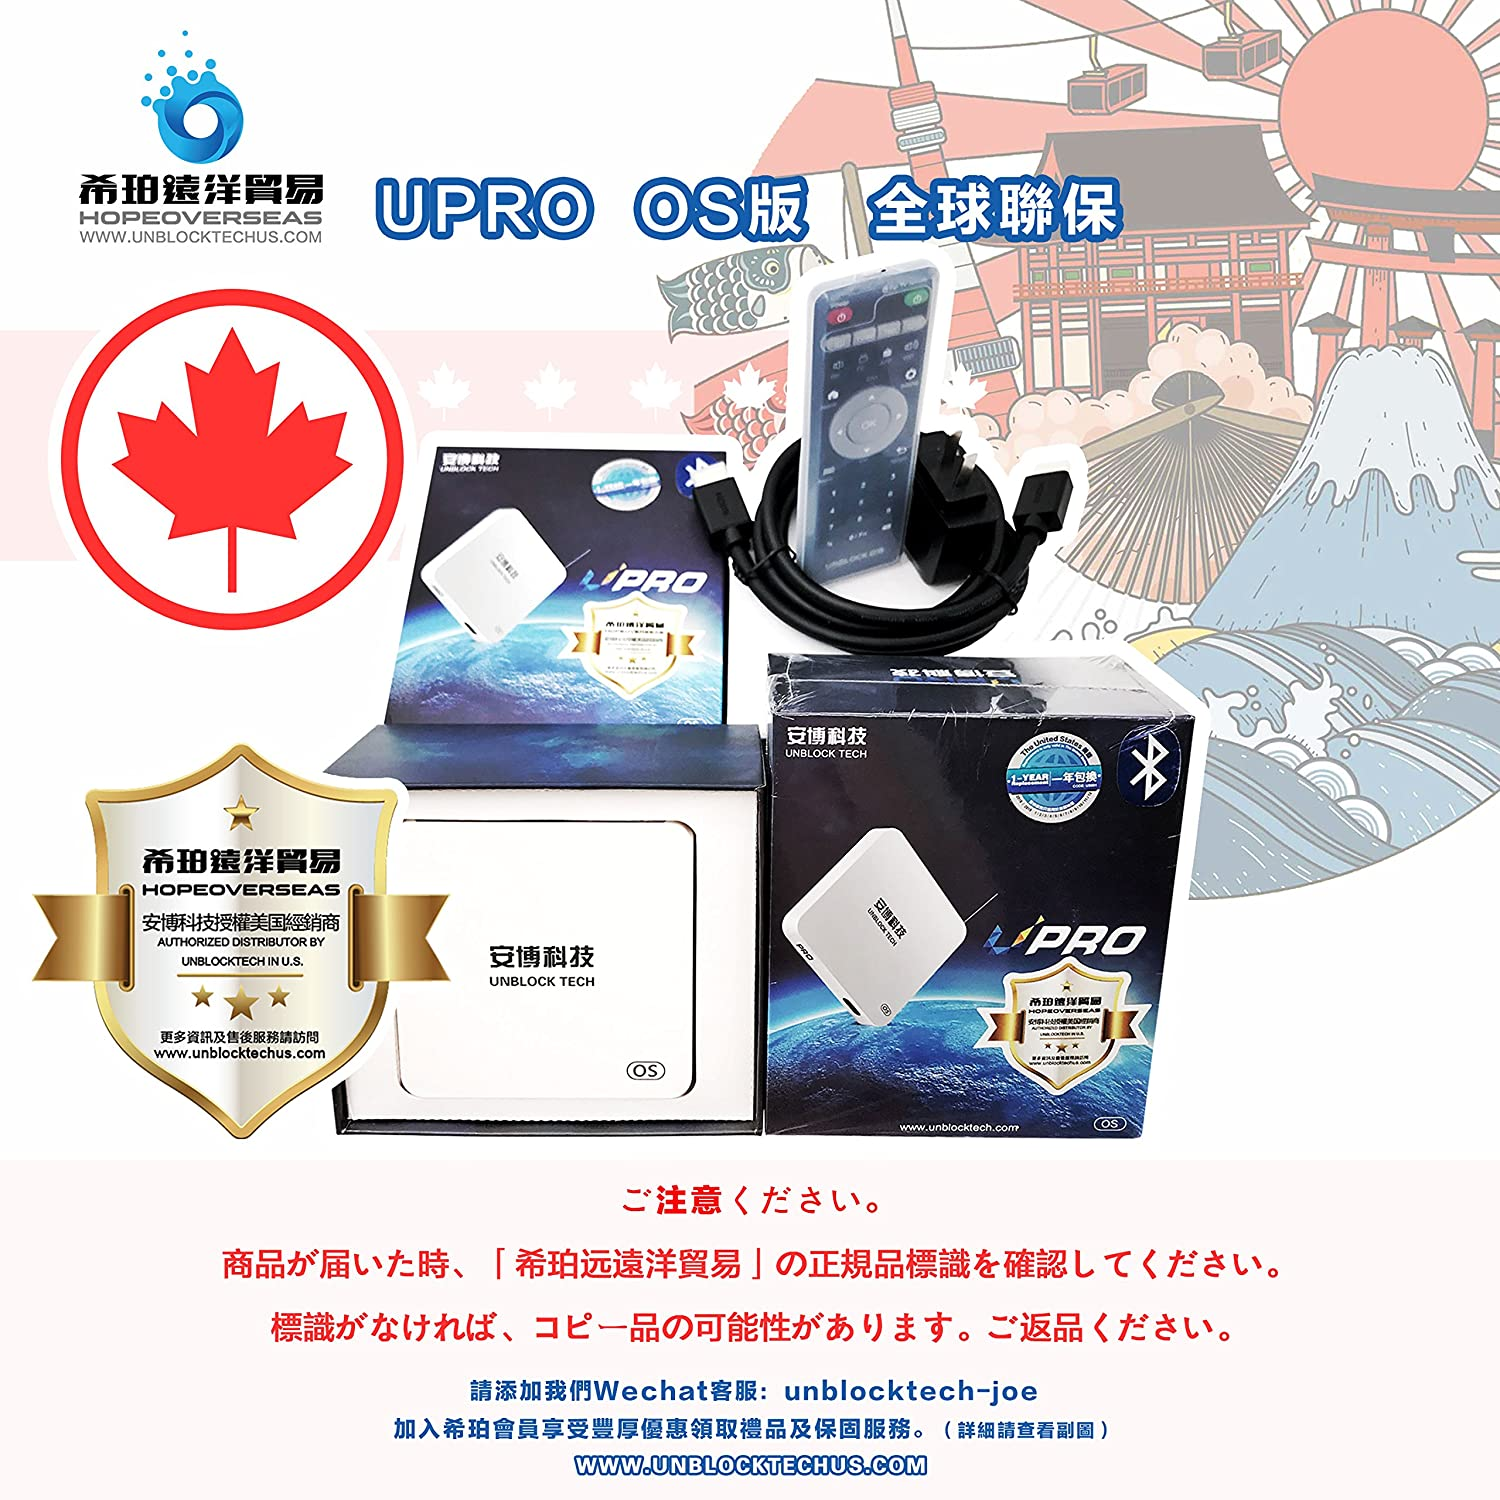 Hope Overseas 2018 Latest UnblockTech U.S. Licensed UPRO I900 Model GEN4 GEN5. OS version UBOX. Free HDMI 2.0 cable and remote case. Hope Overseas an authorized distributor by unblocktech in U.S